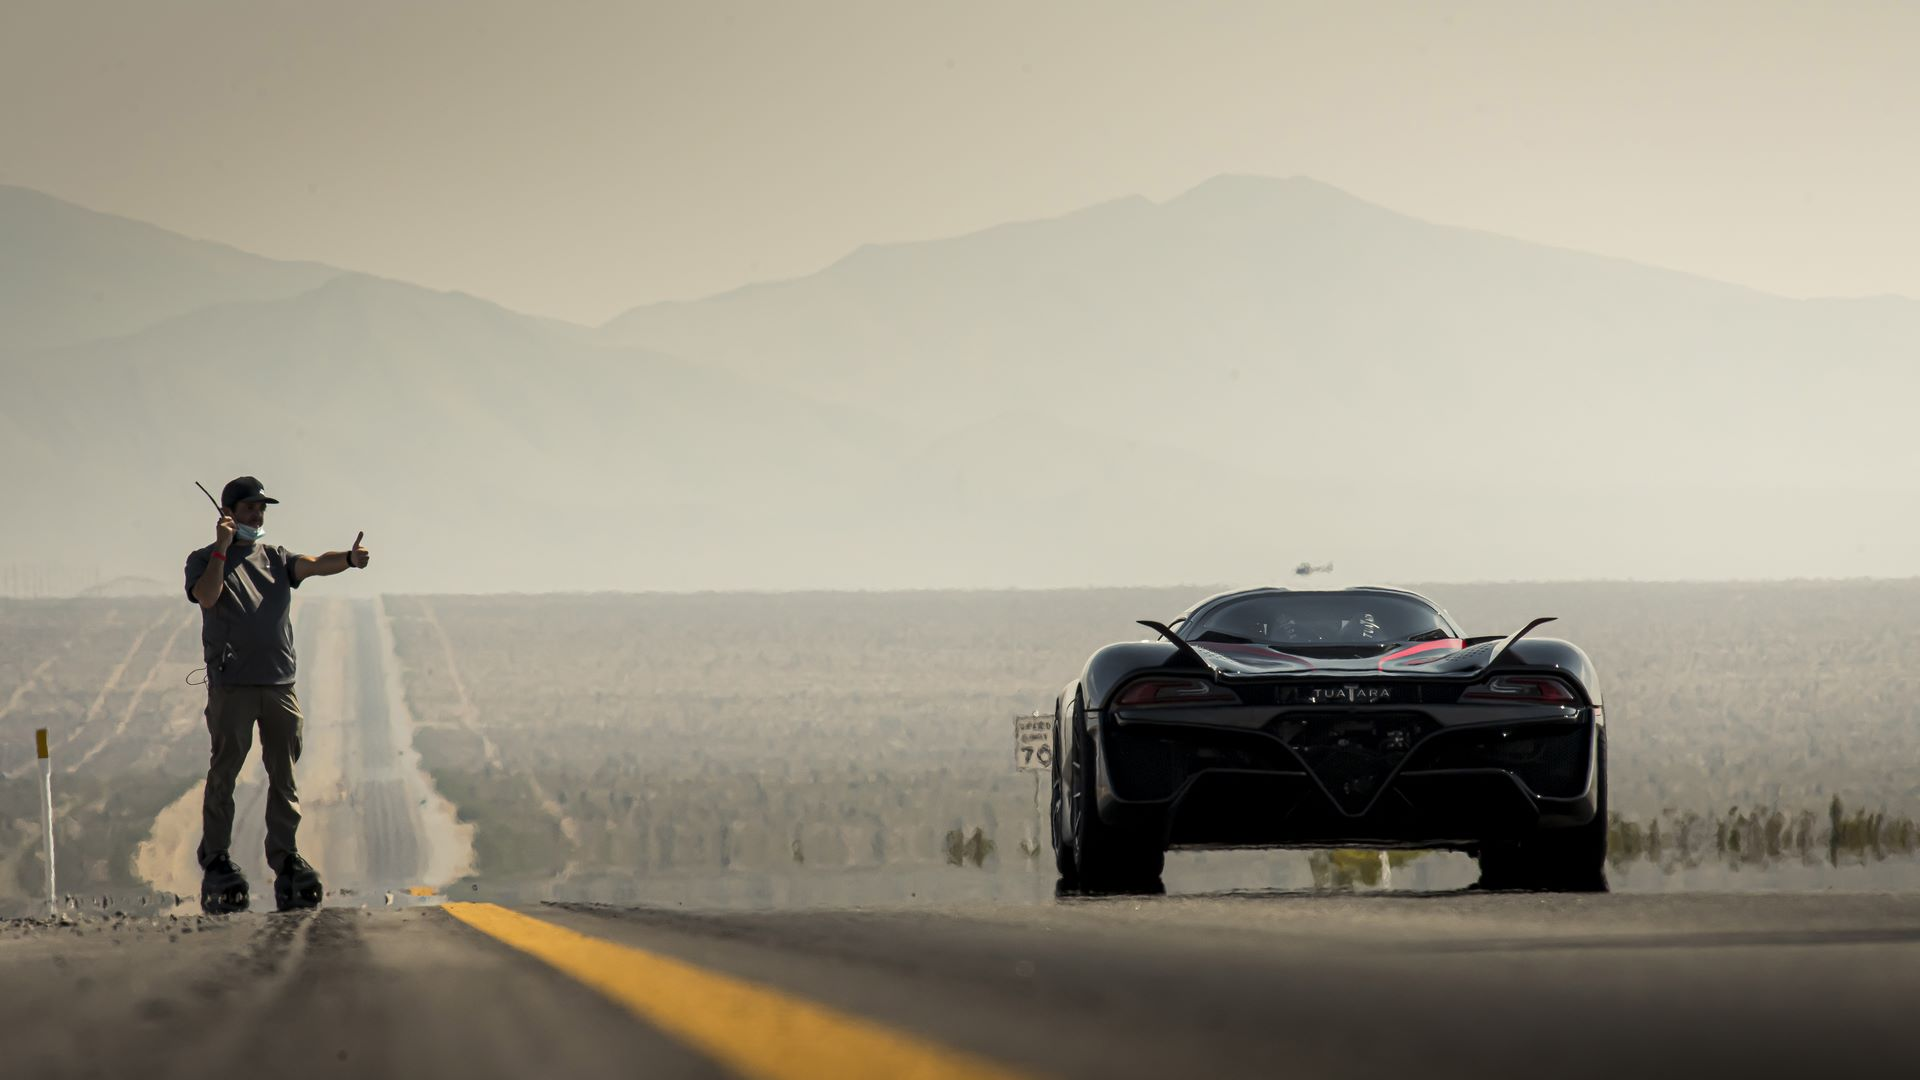 SSC Tuatara Production Car Speed Record, Pahrump NV. Oct 10, 2020  Photo: James Lipman